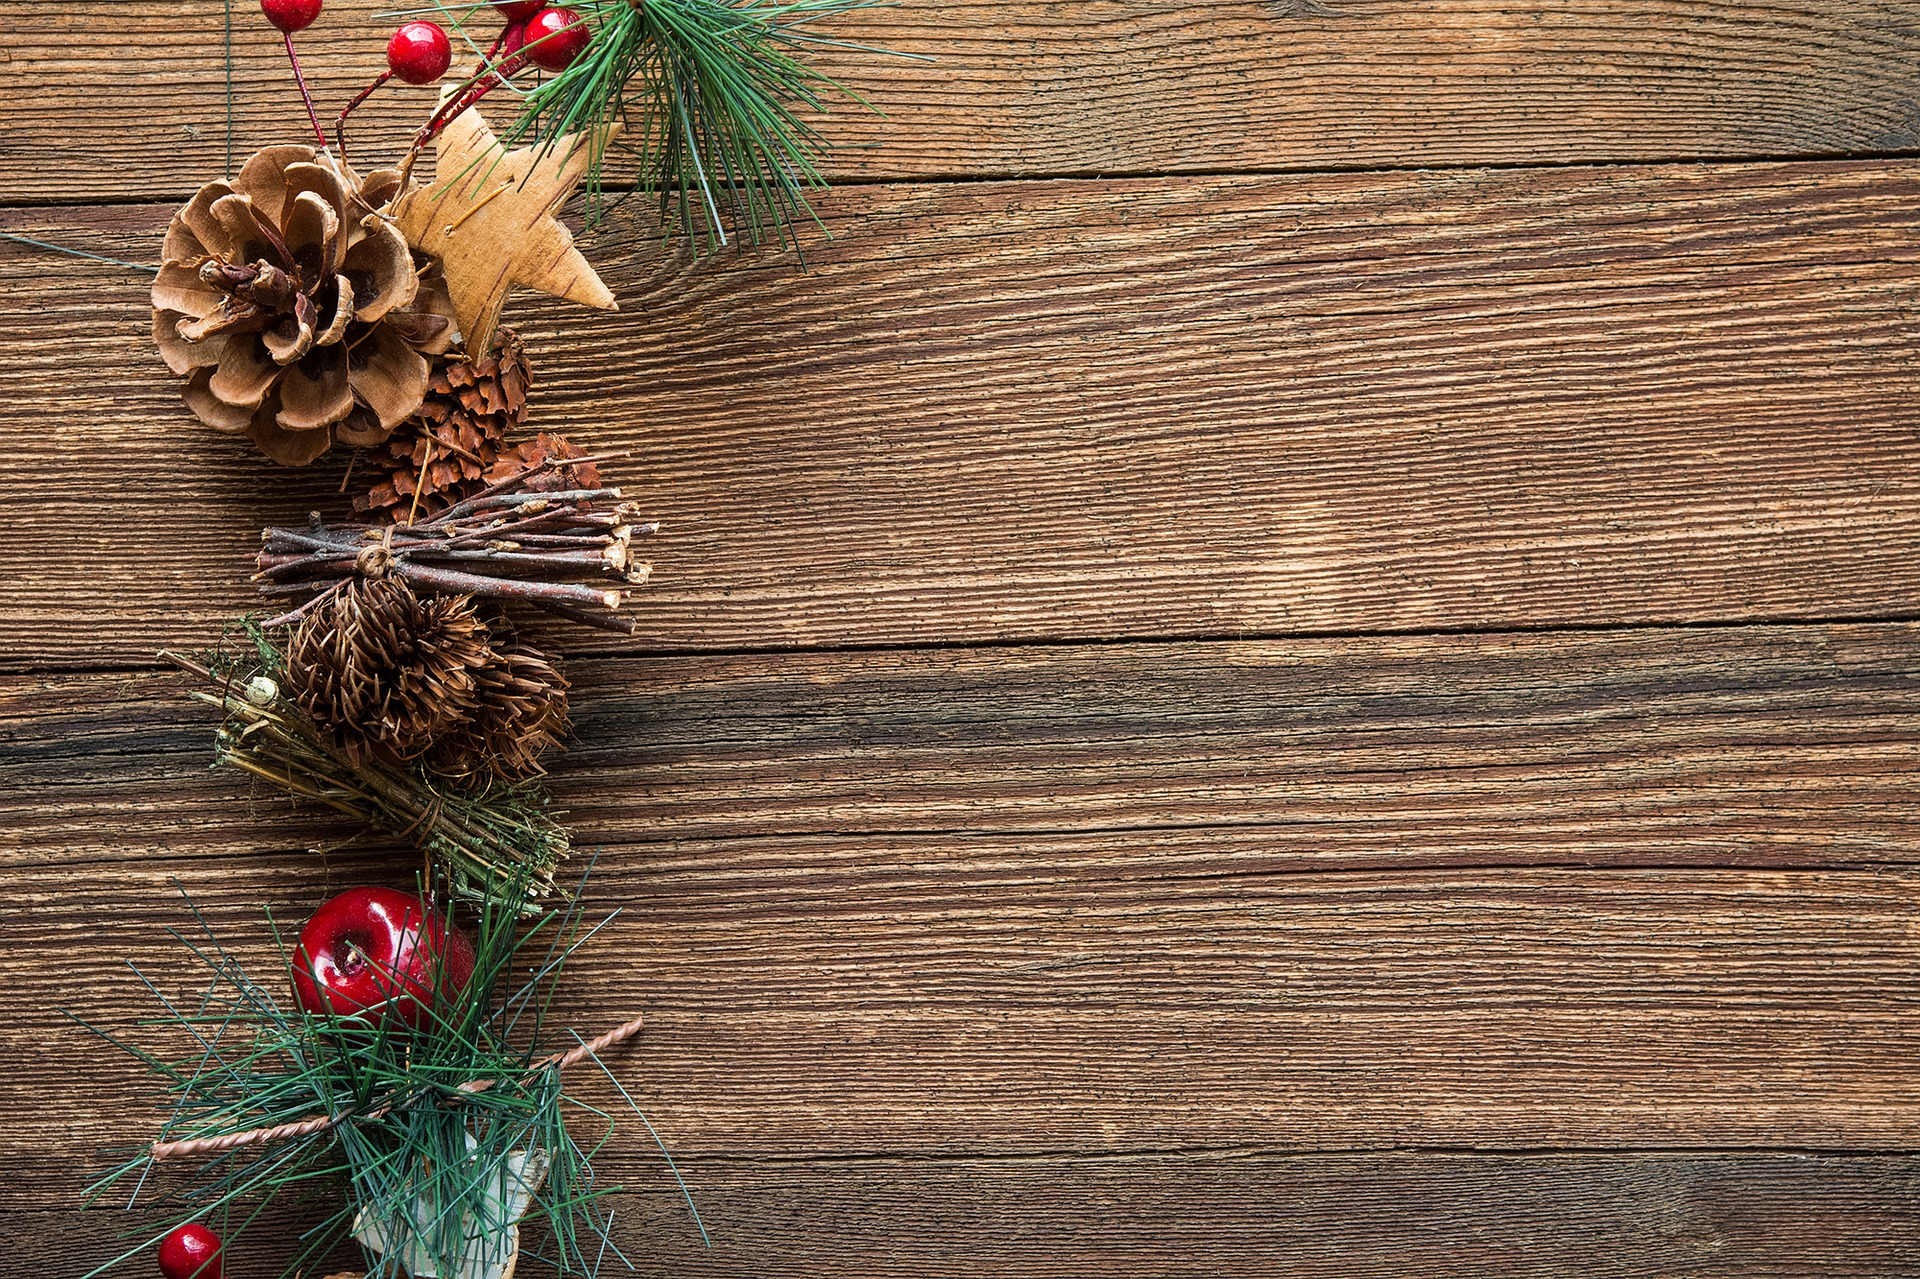 Christmas Backgrounds Free.Pine Cones Holly And Greenery Background Free Christmas Hq